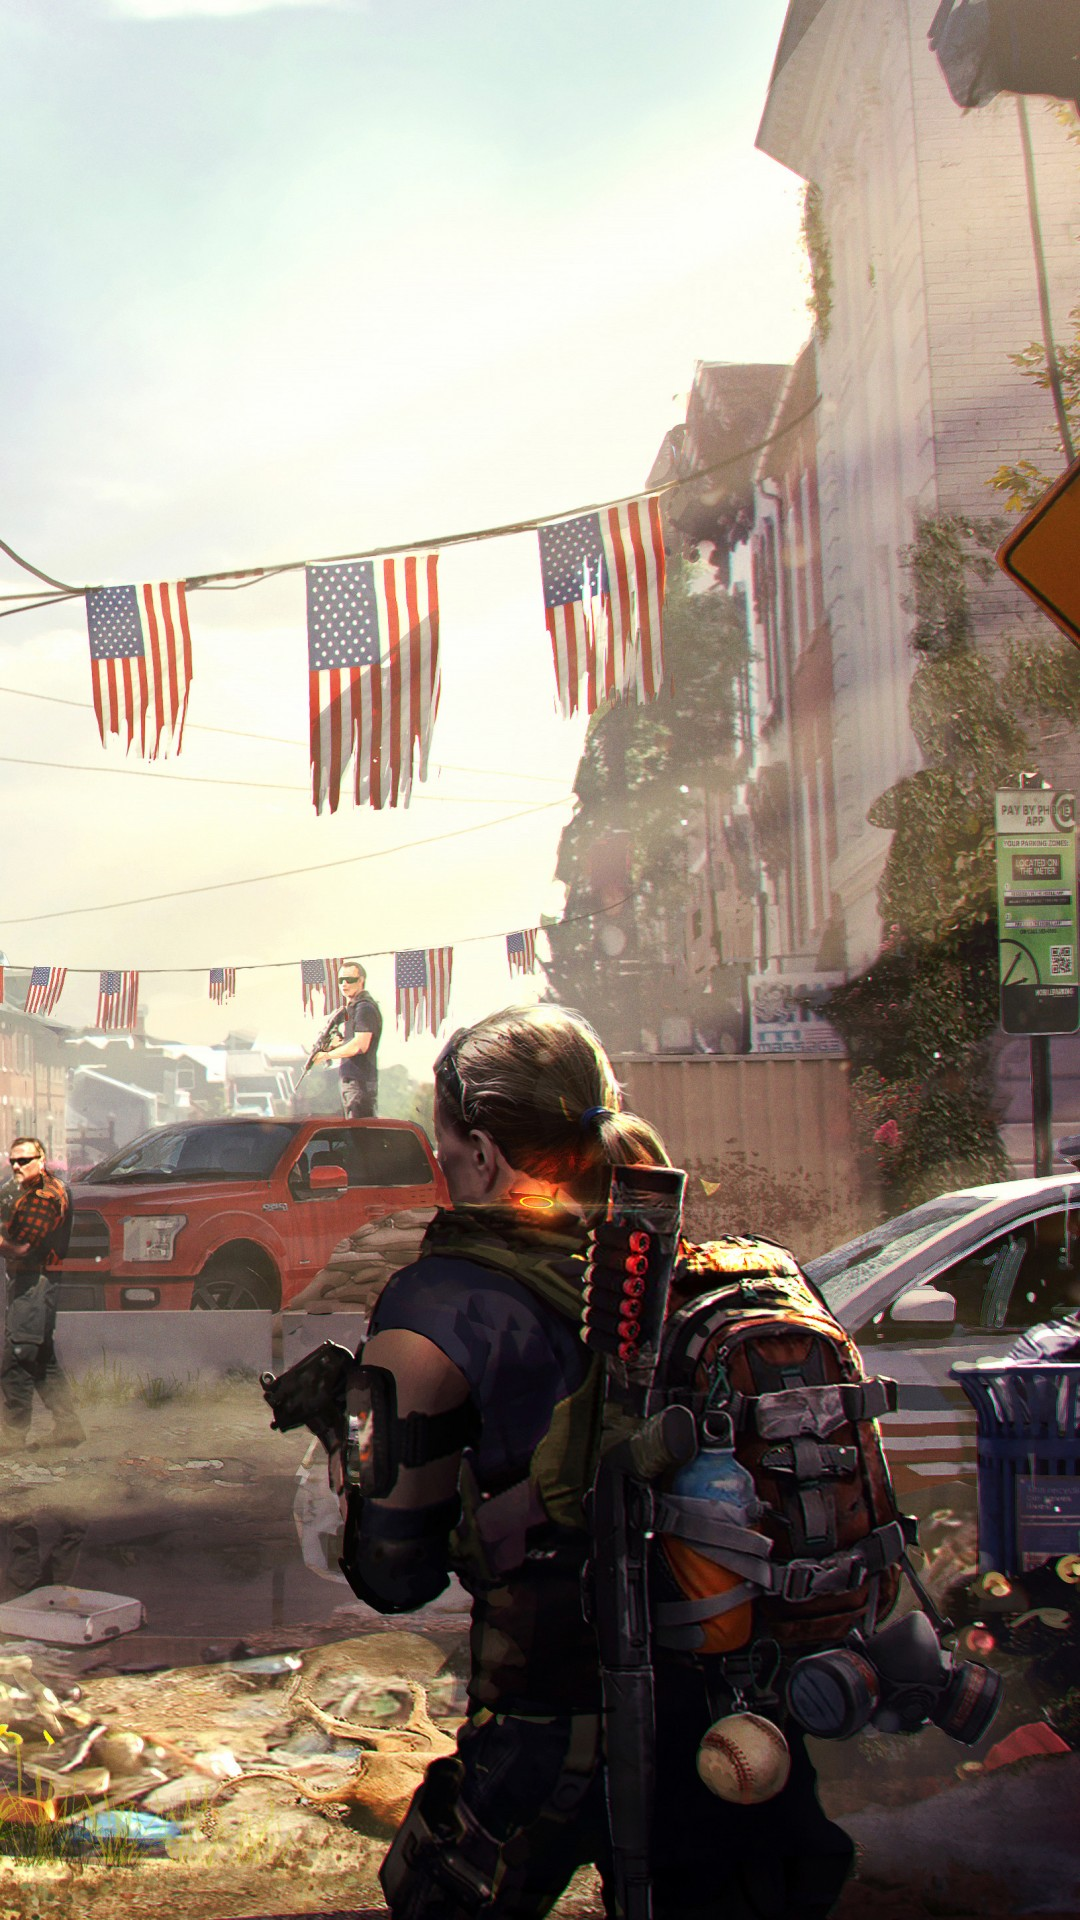 Wallpaper Nature With Quotes Wallpaper Tom Clancy S The Division 2 E3 2018 Artwork